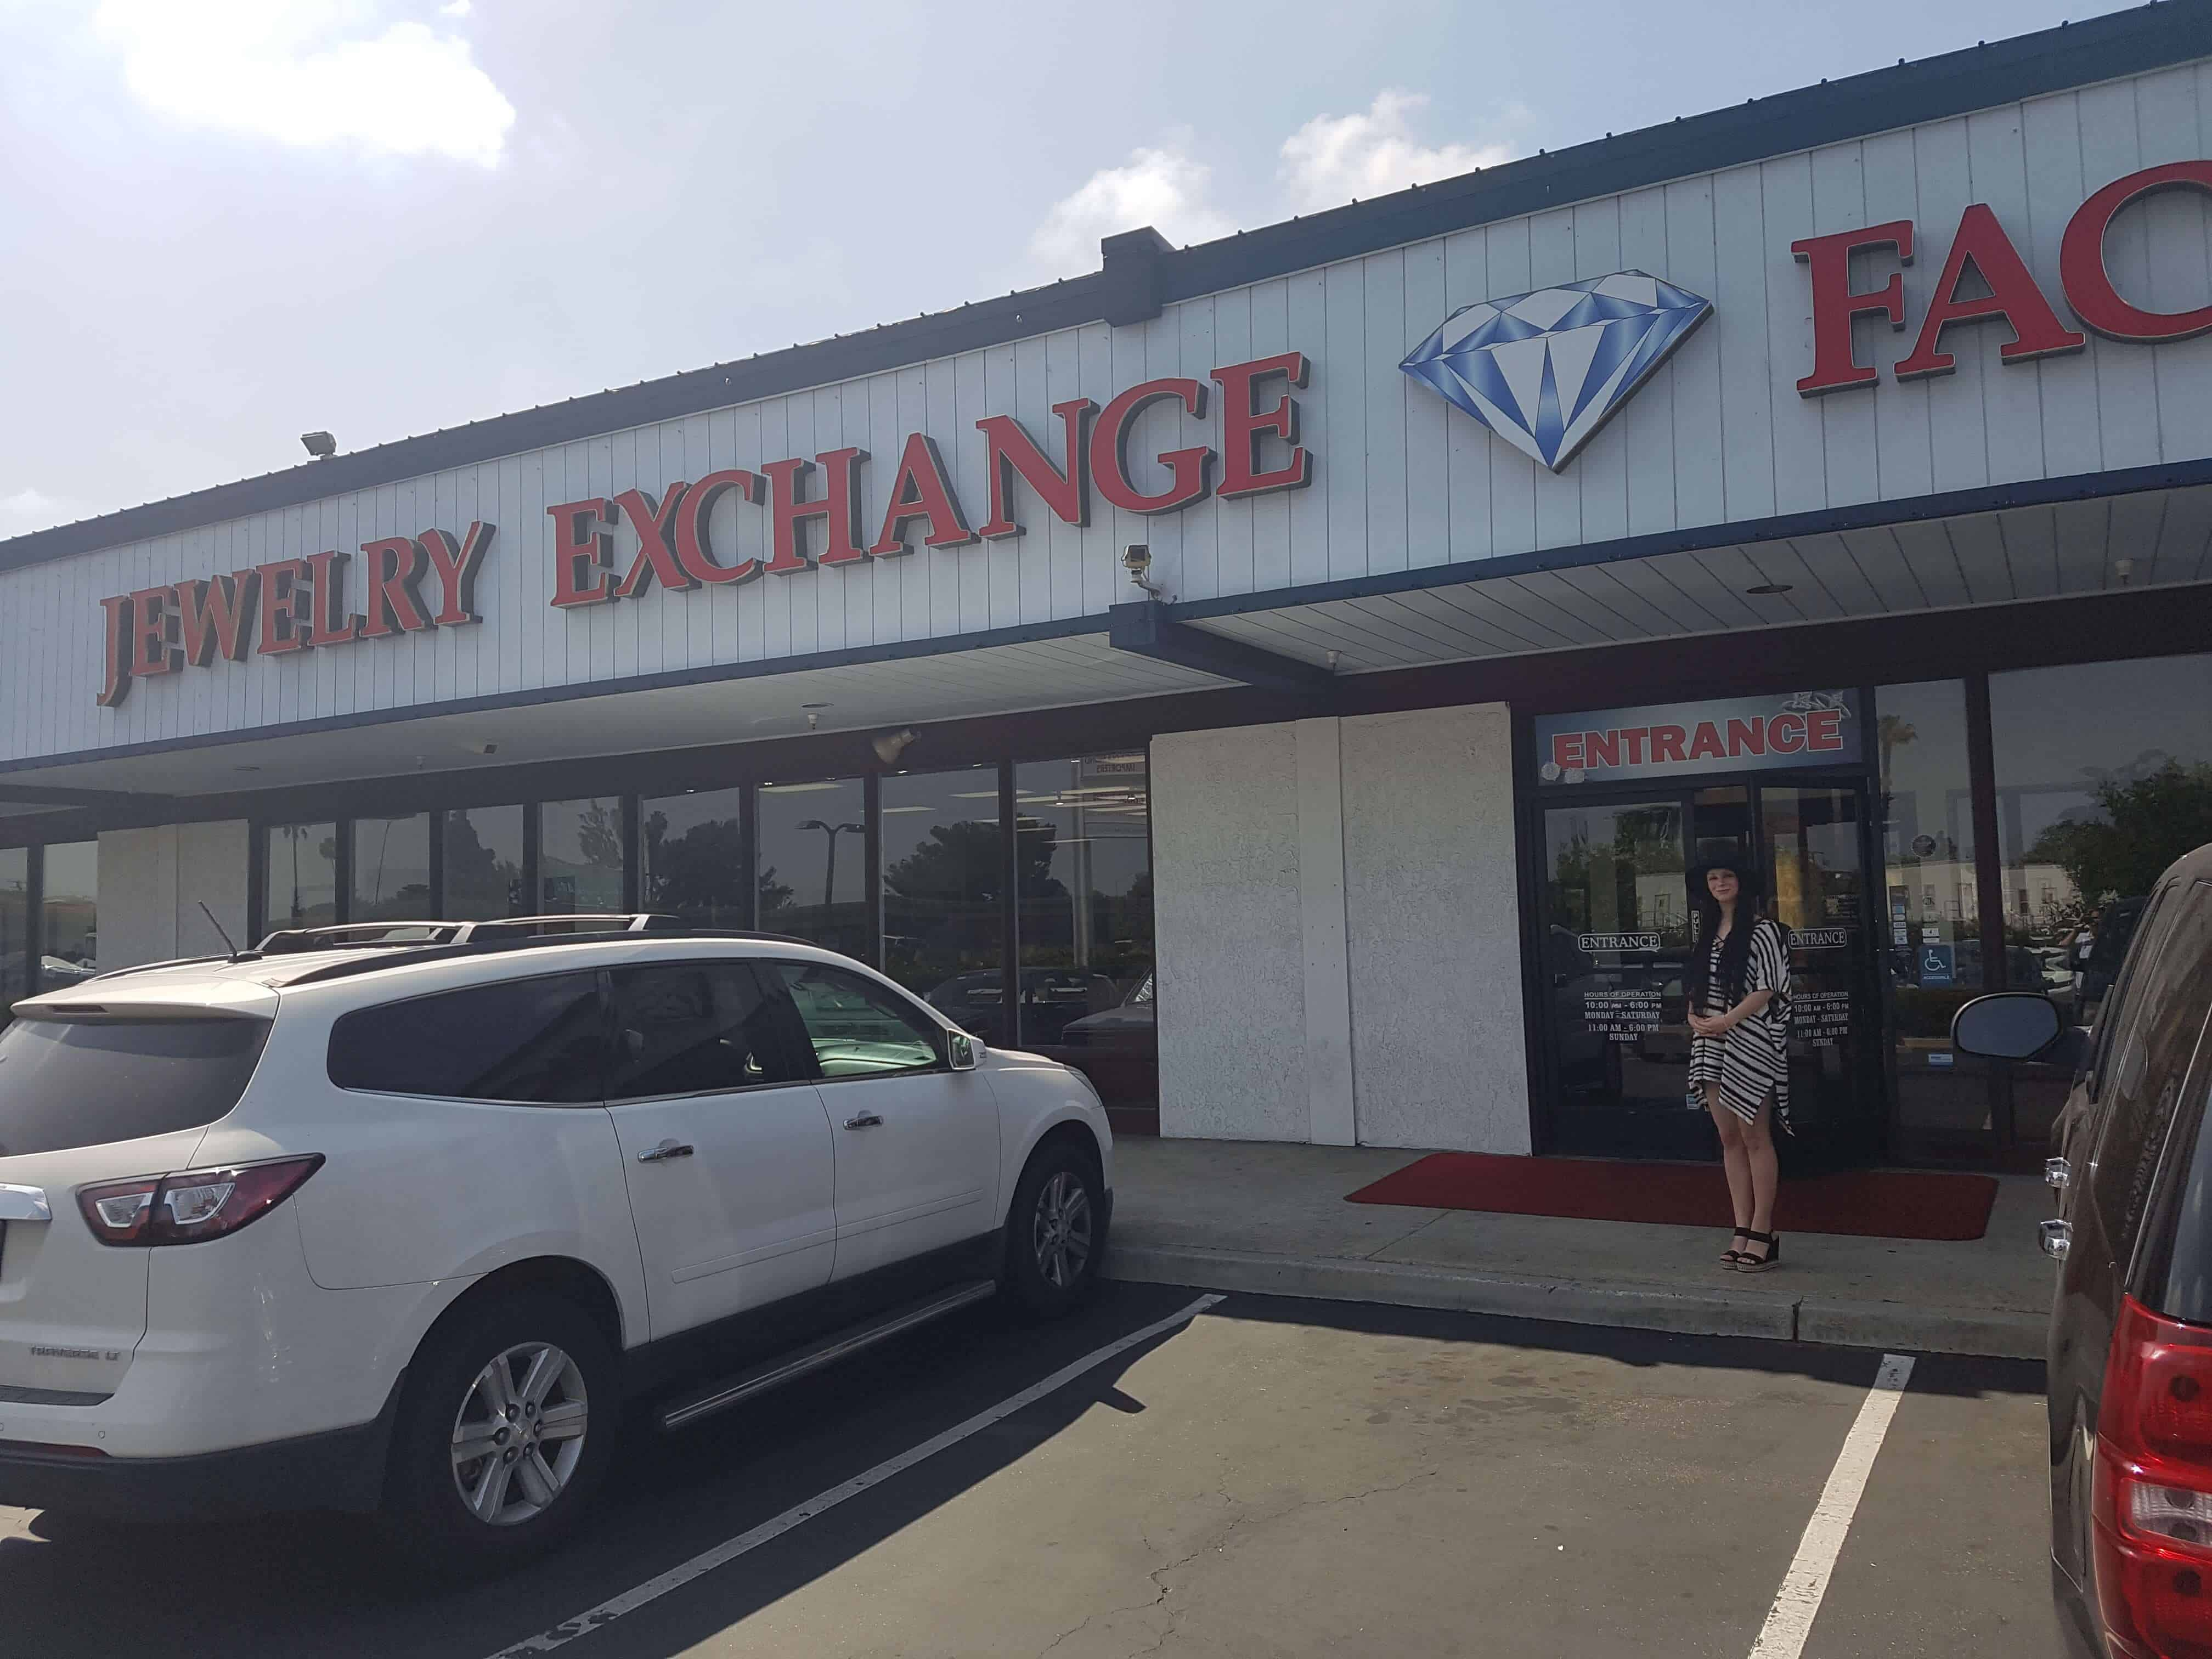 Our Review Of The Jewelry Exchange